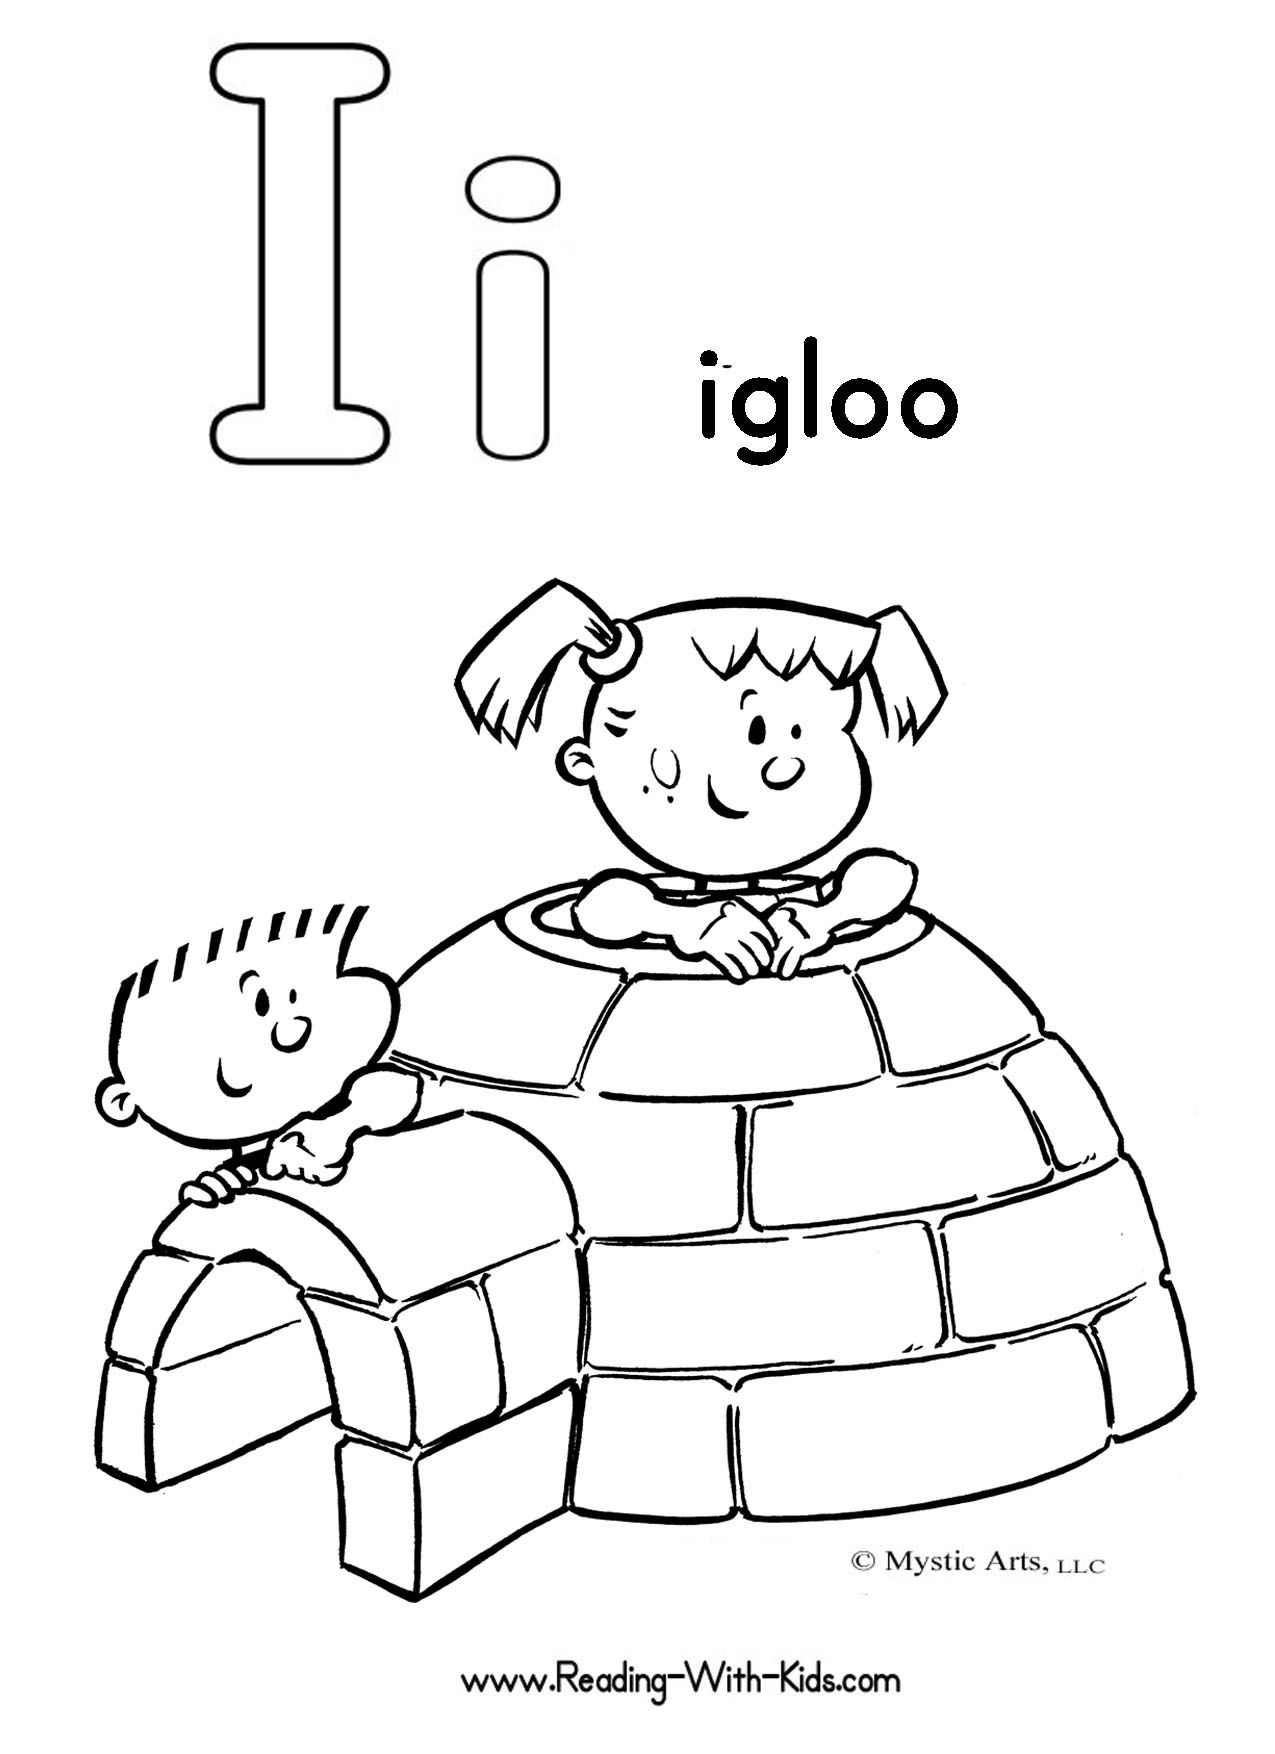 Childrens educational coloring activity book - Igloo Coloring Pic Alphabet Coloring Pages